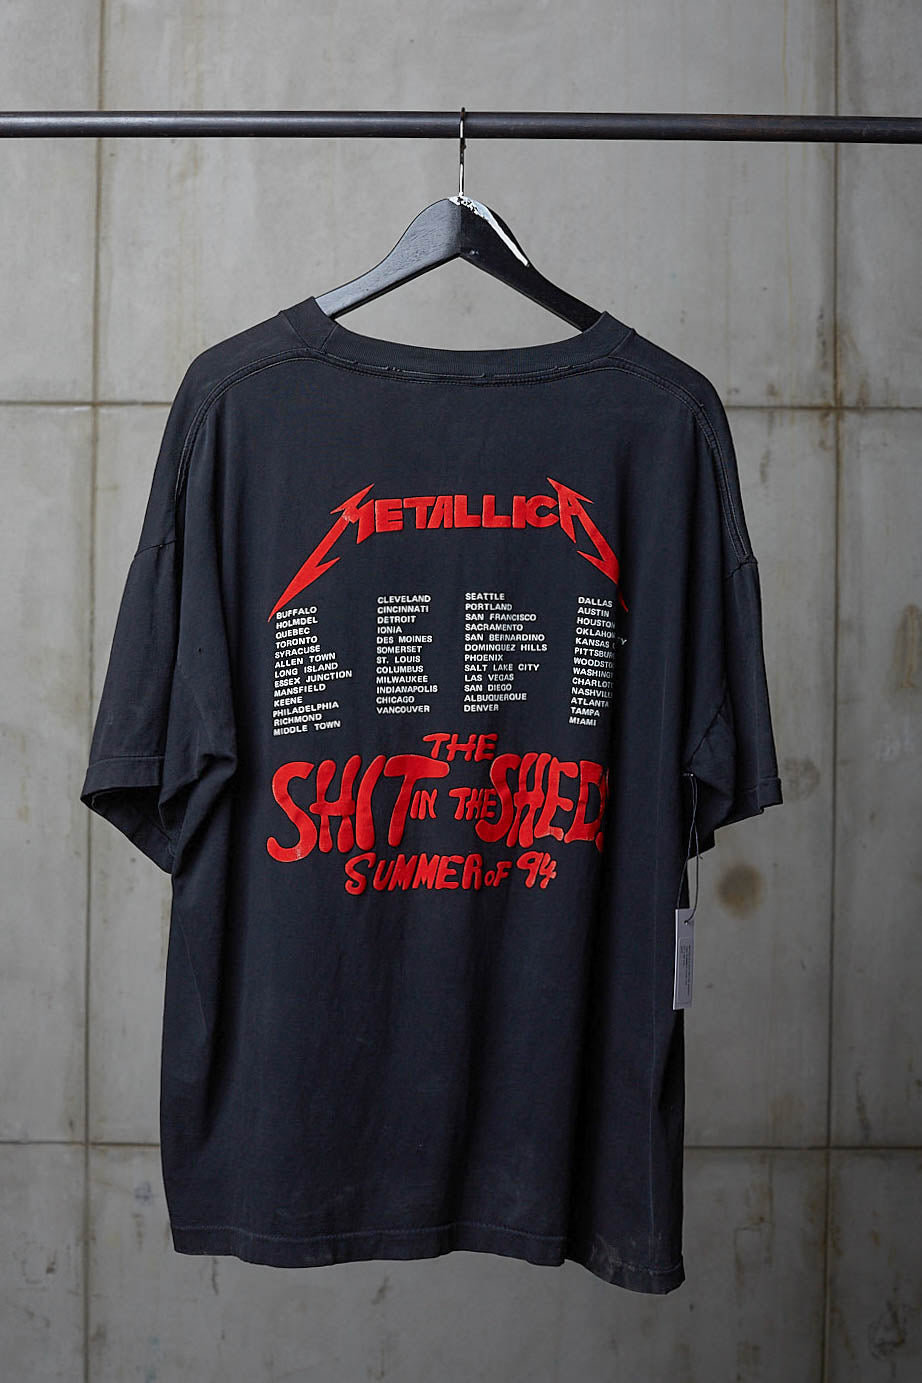 METALLICA SHIT IN THE SHEDS 1994 SUMMER TOUR TEE